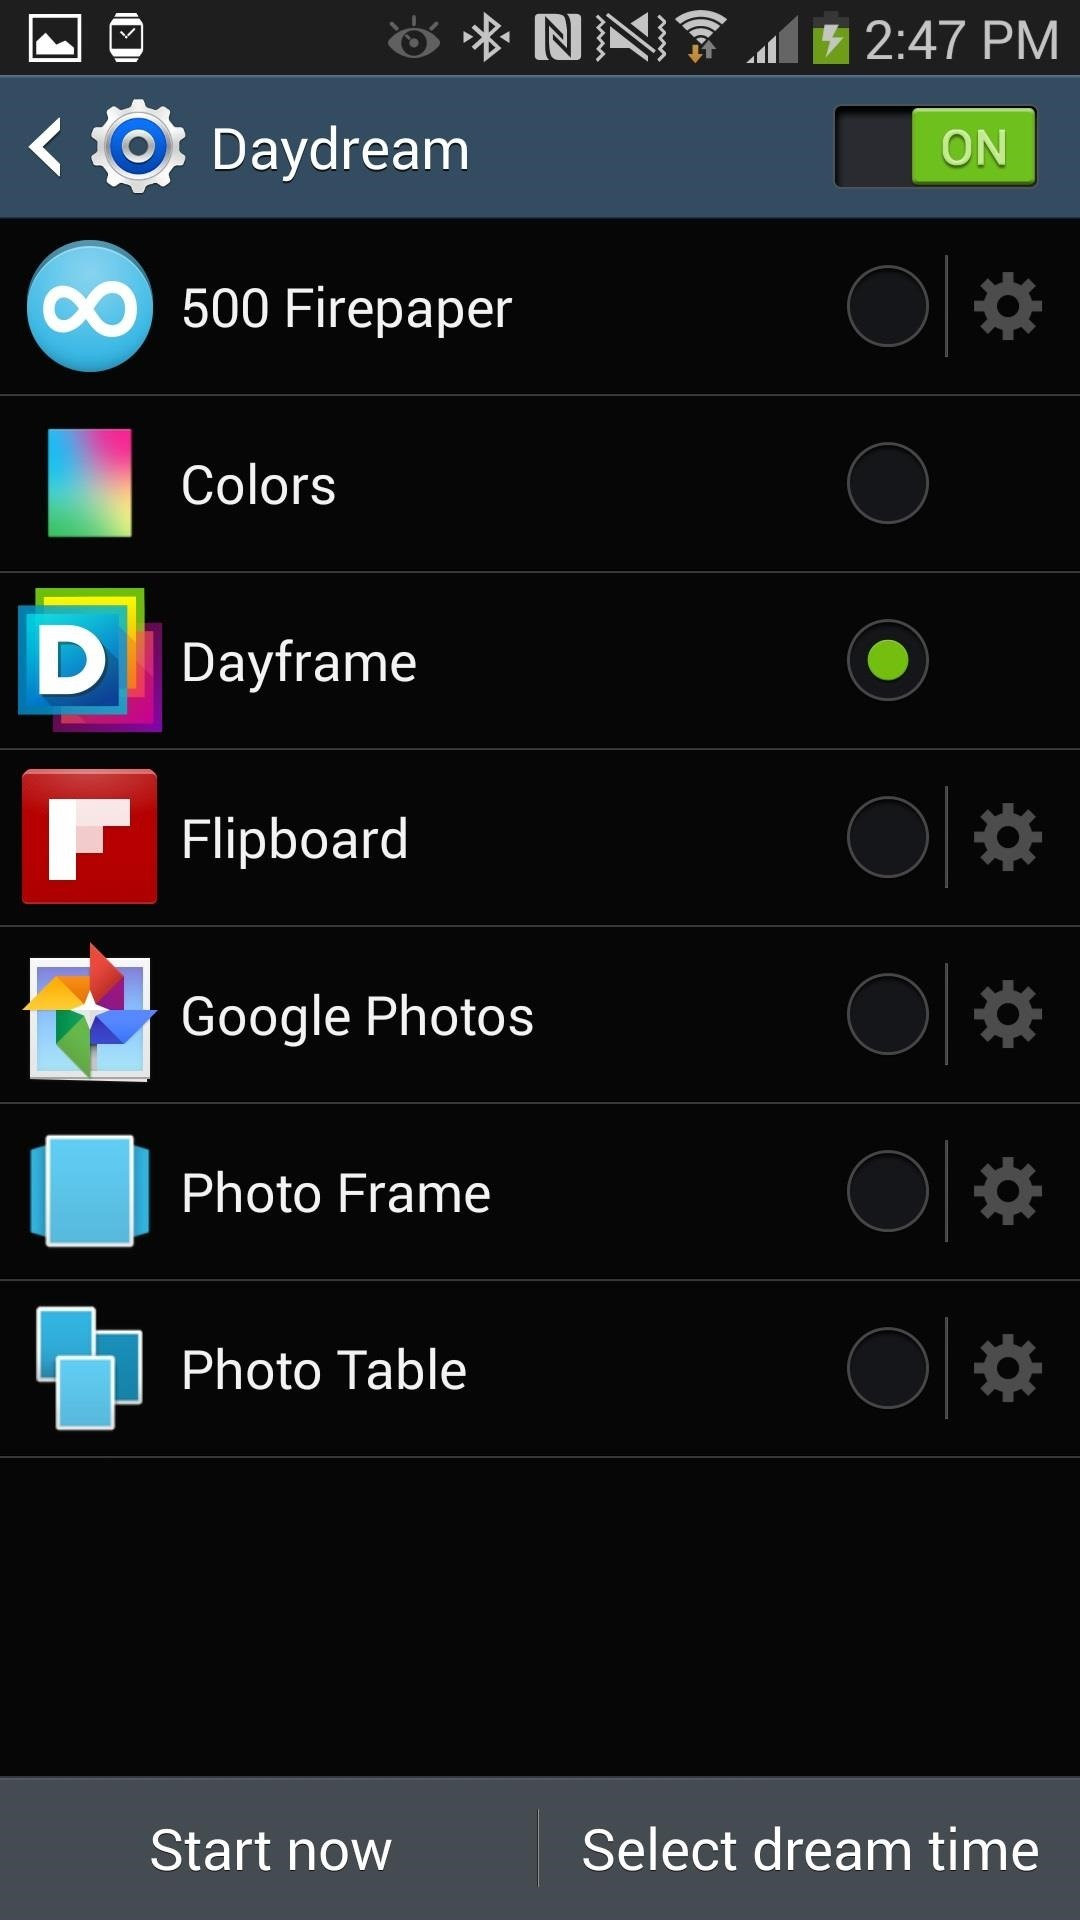 How to Turn Your Favorite Pics from Instagram, Tumblr, & More into Daydreams on Your Galaxy Note 3